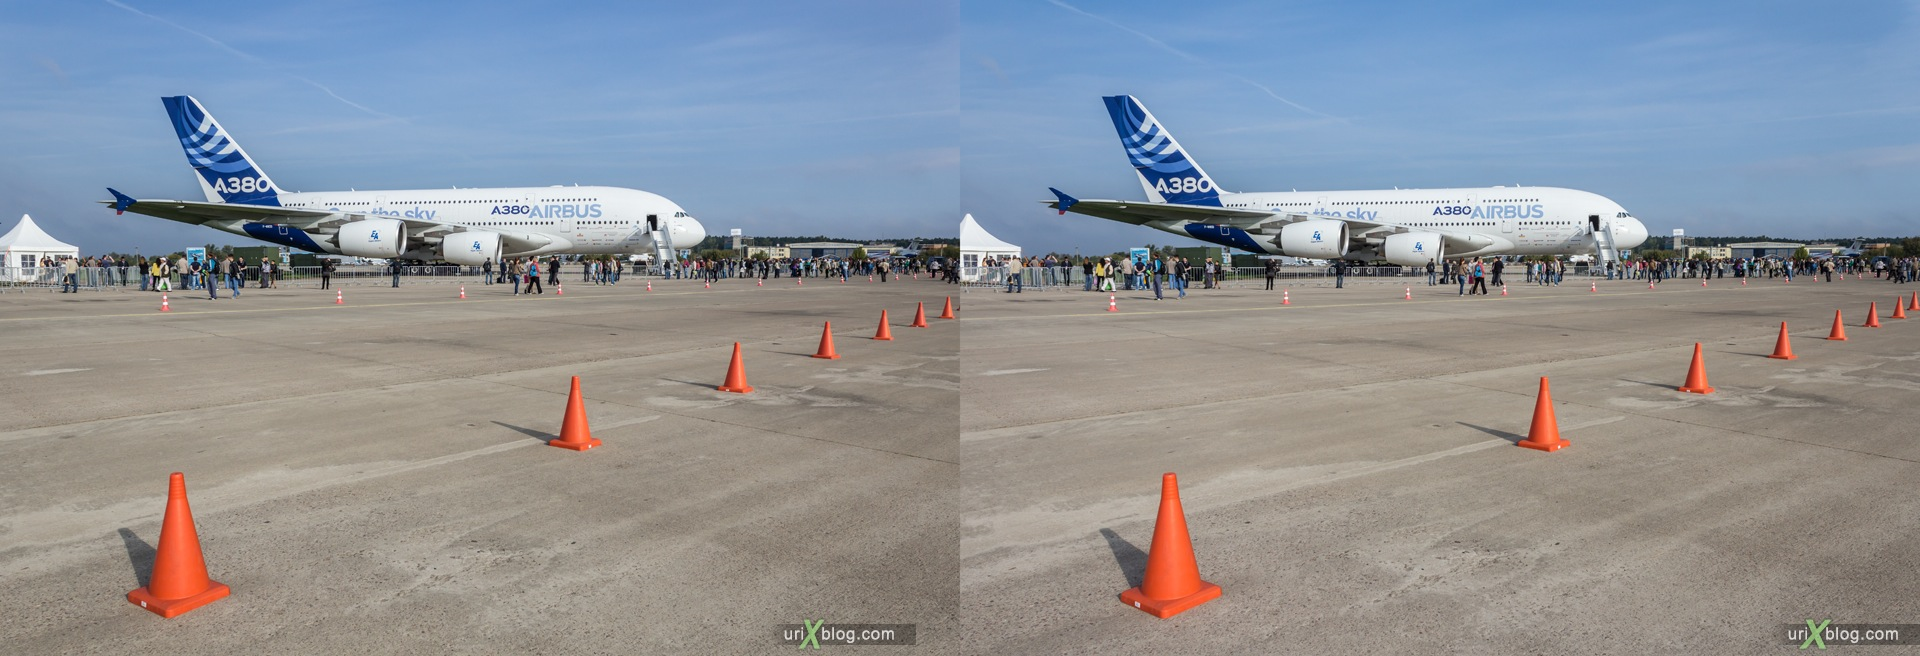 2013, Airbus A-380, MAKS, International Aviation and Space Salon, Russia, Ramenskoye airfield, airplane, 3D, stereo pair, cross-eyed, crossview, cross view stereo pair, stereoscopic